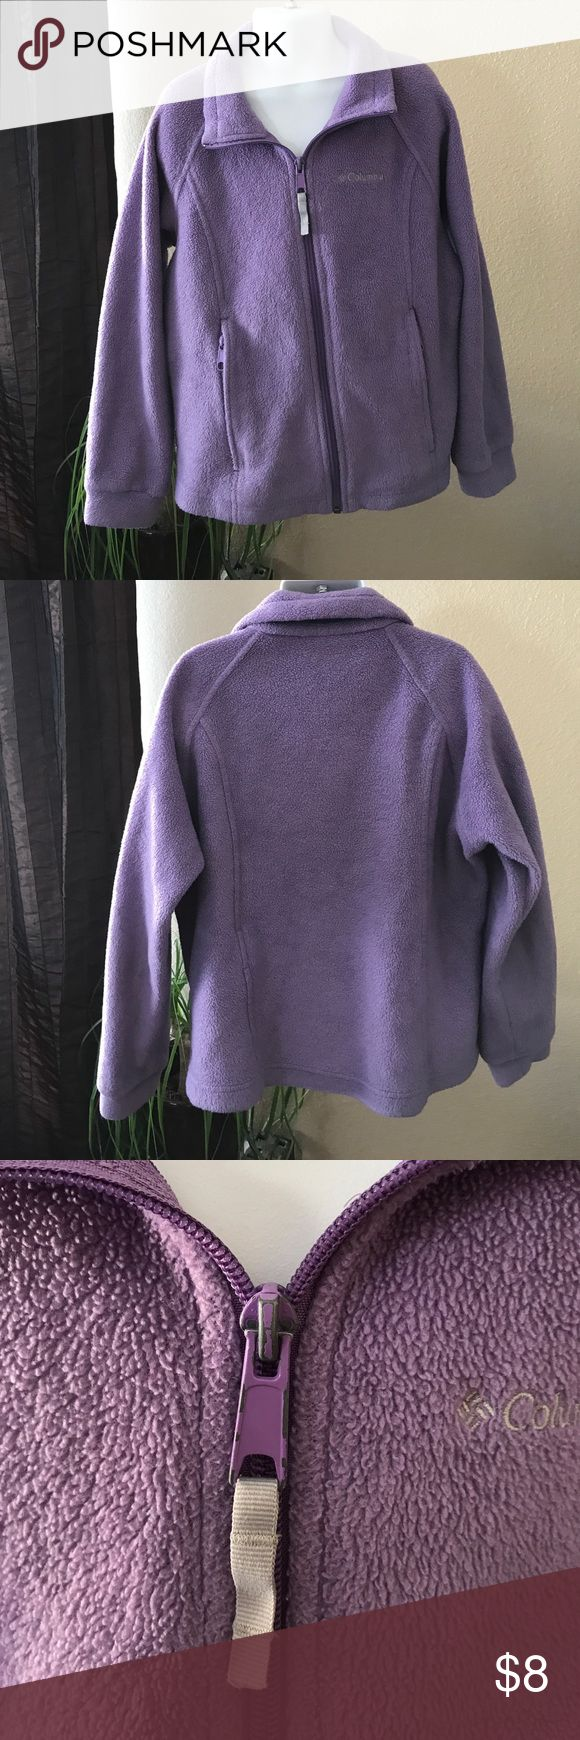 Girls Columbia Jacket & lightweight zip up hoodie 💜💜💜BOGO!!💜💜💜 Gently used...  Some signs of wear on the metal part of the zipper.  See pictures. Columbia Shirts & Tops Sweaters